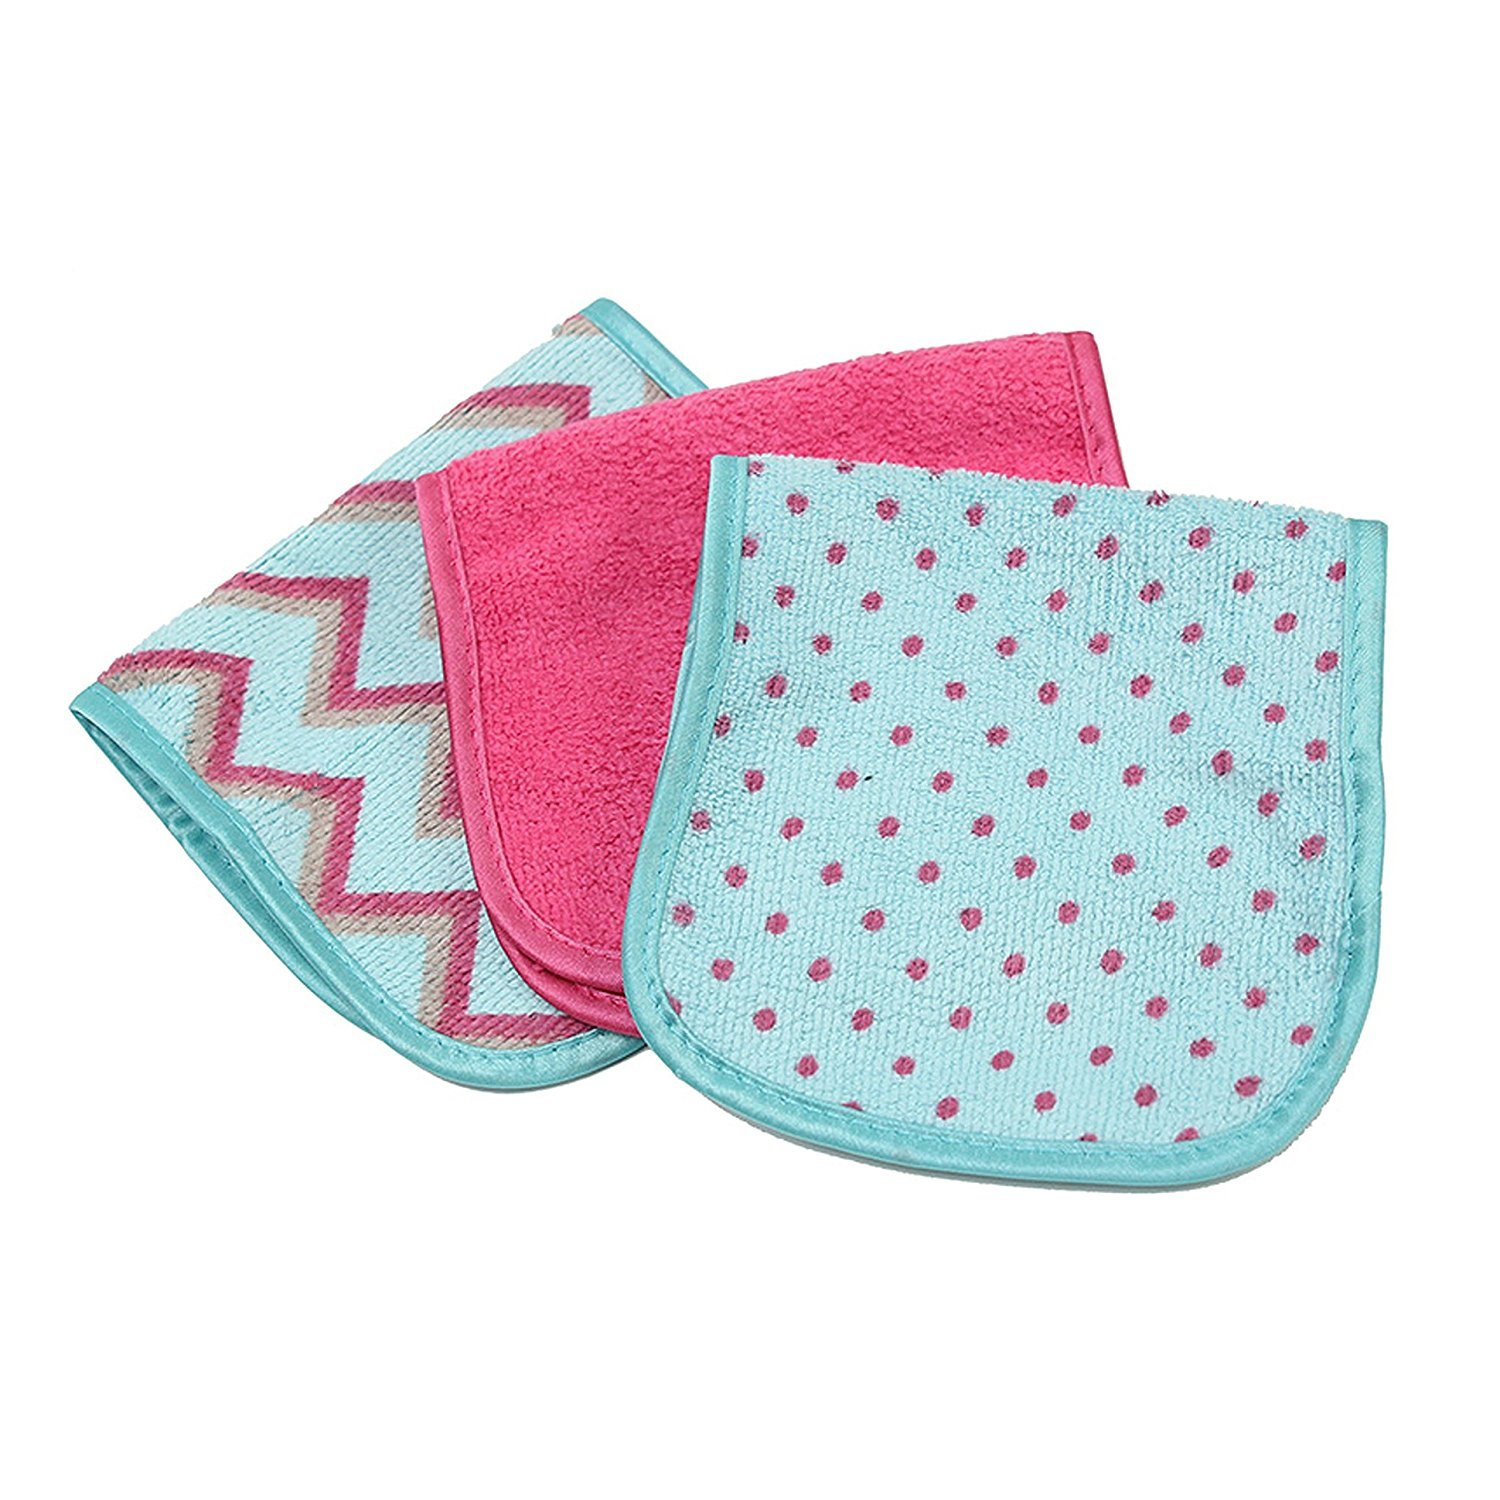 S & T Always Off Makeup Remover Cloths, 3 Count - Colors May Vary